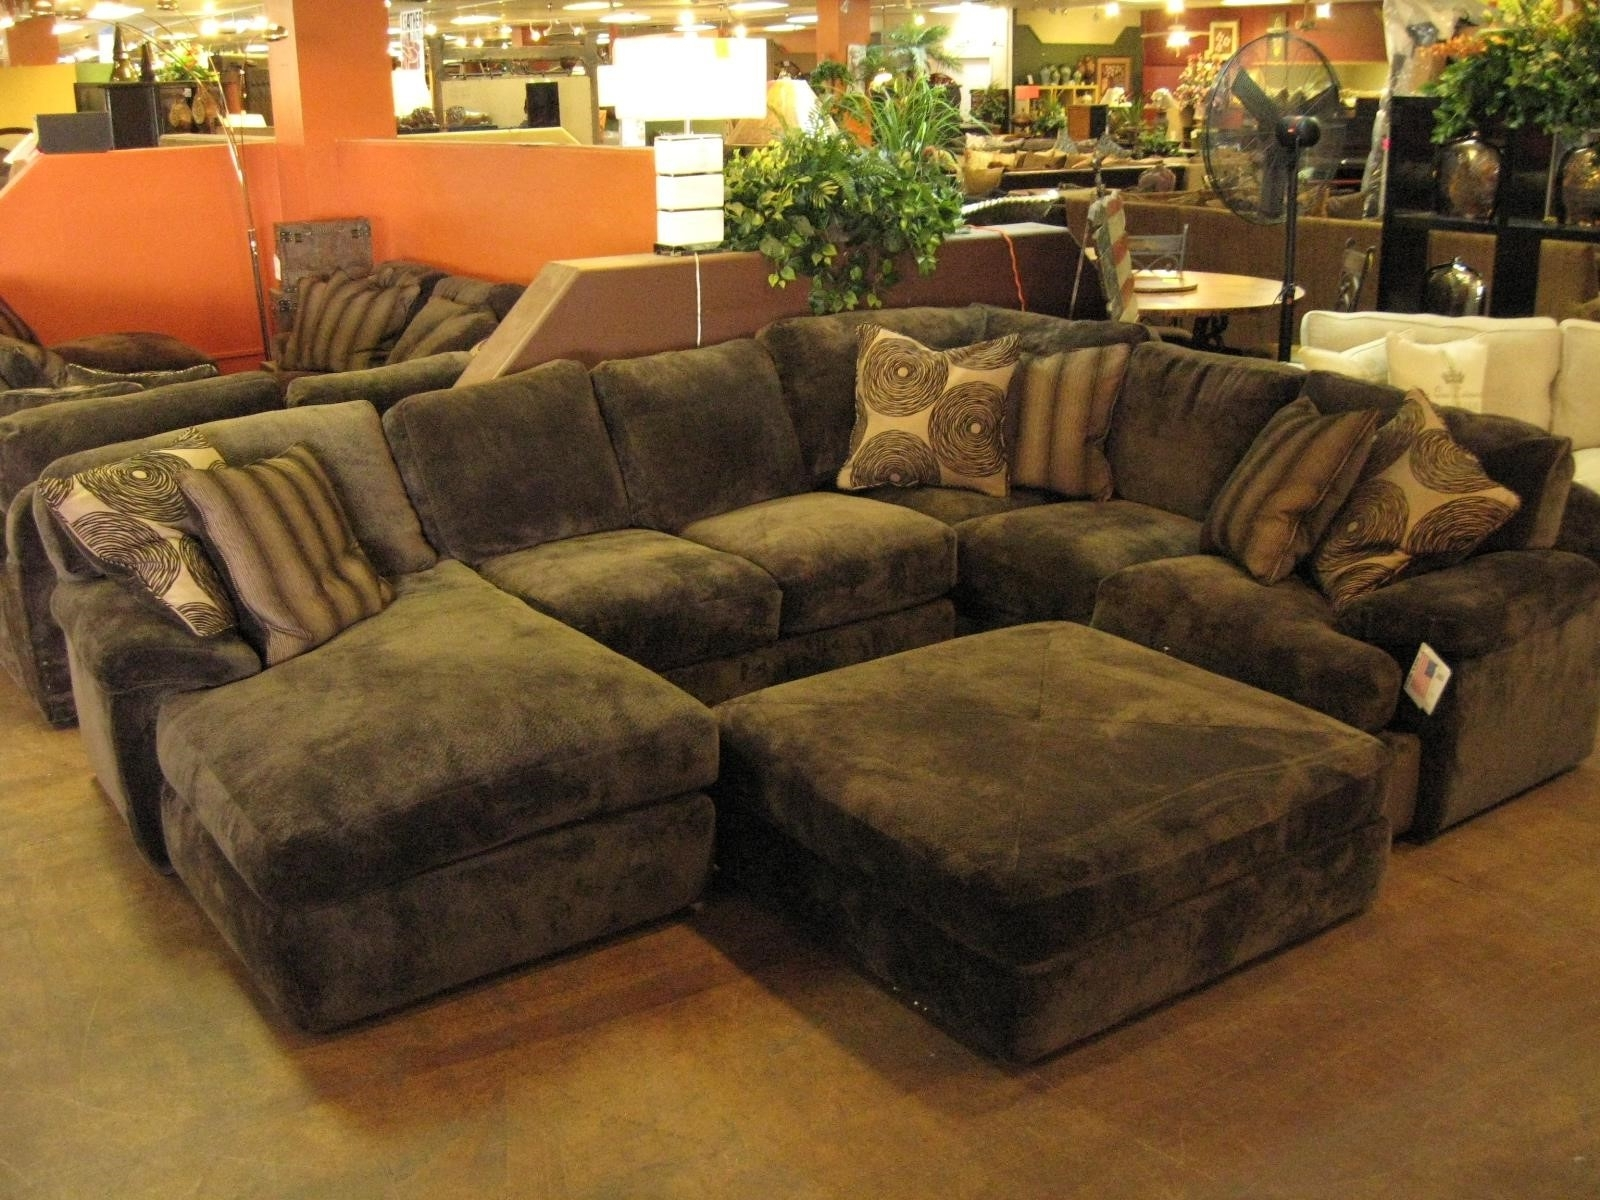 Trendy Sofa : Magnificent Large Sectional Sofa With Chaise Reclining In Oversized Sectional Sofas (View 3 of 20)